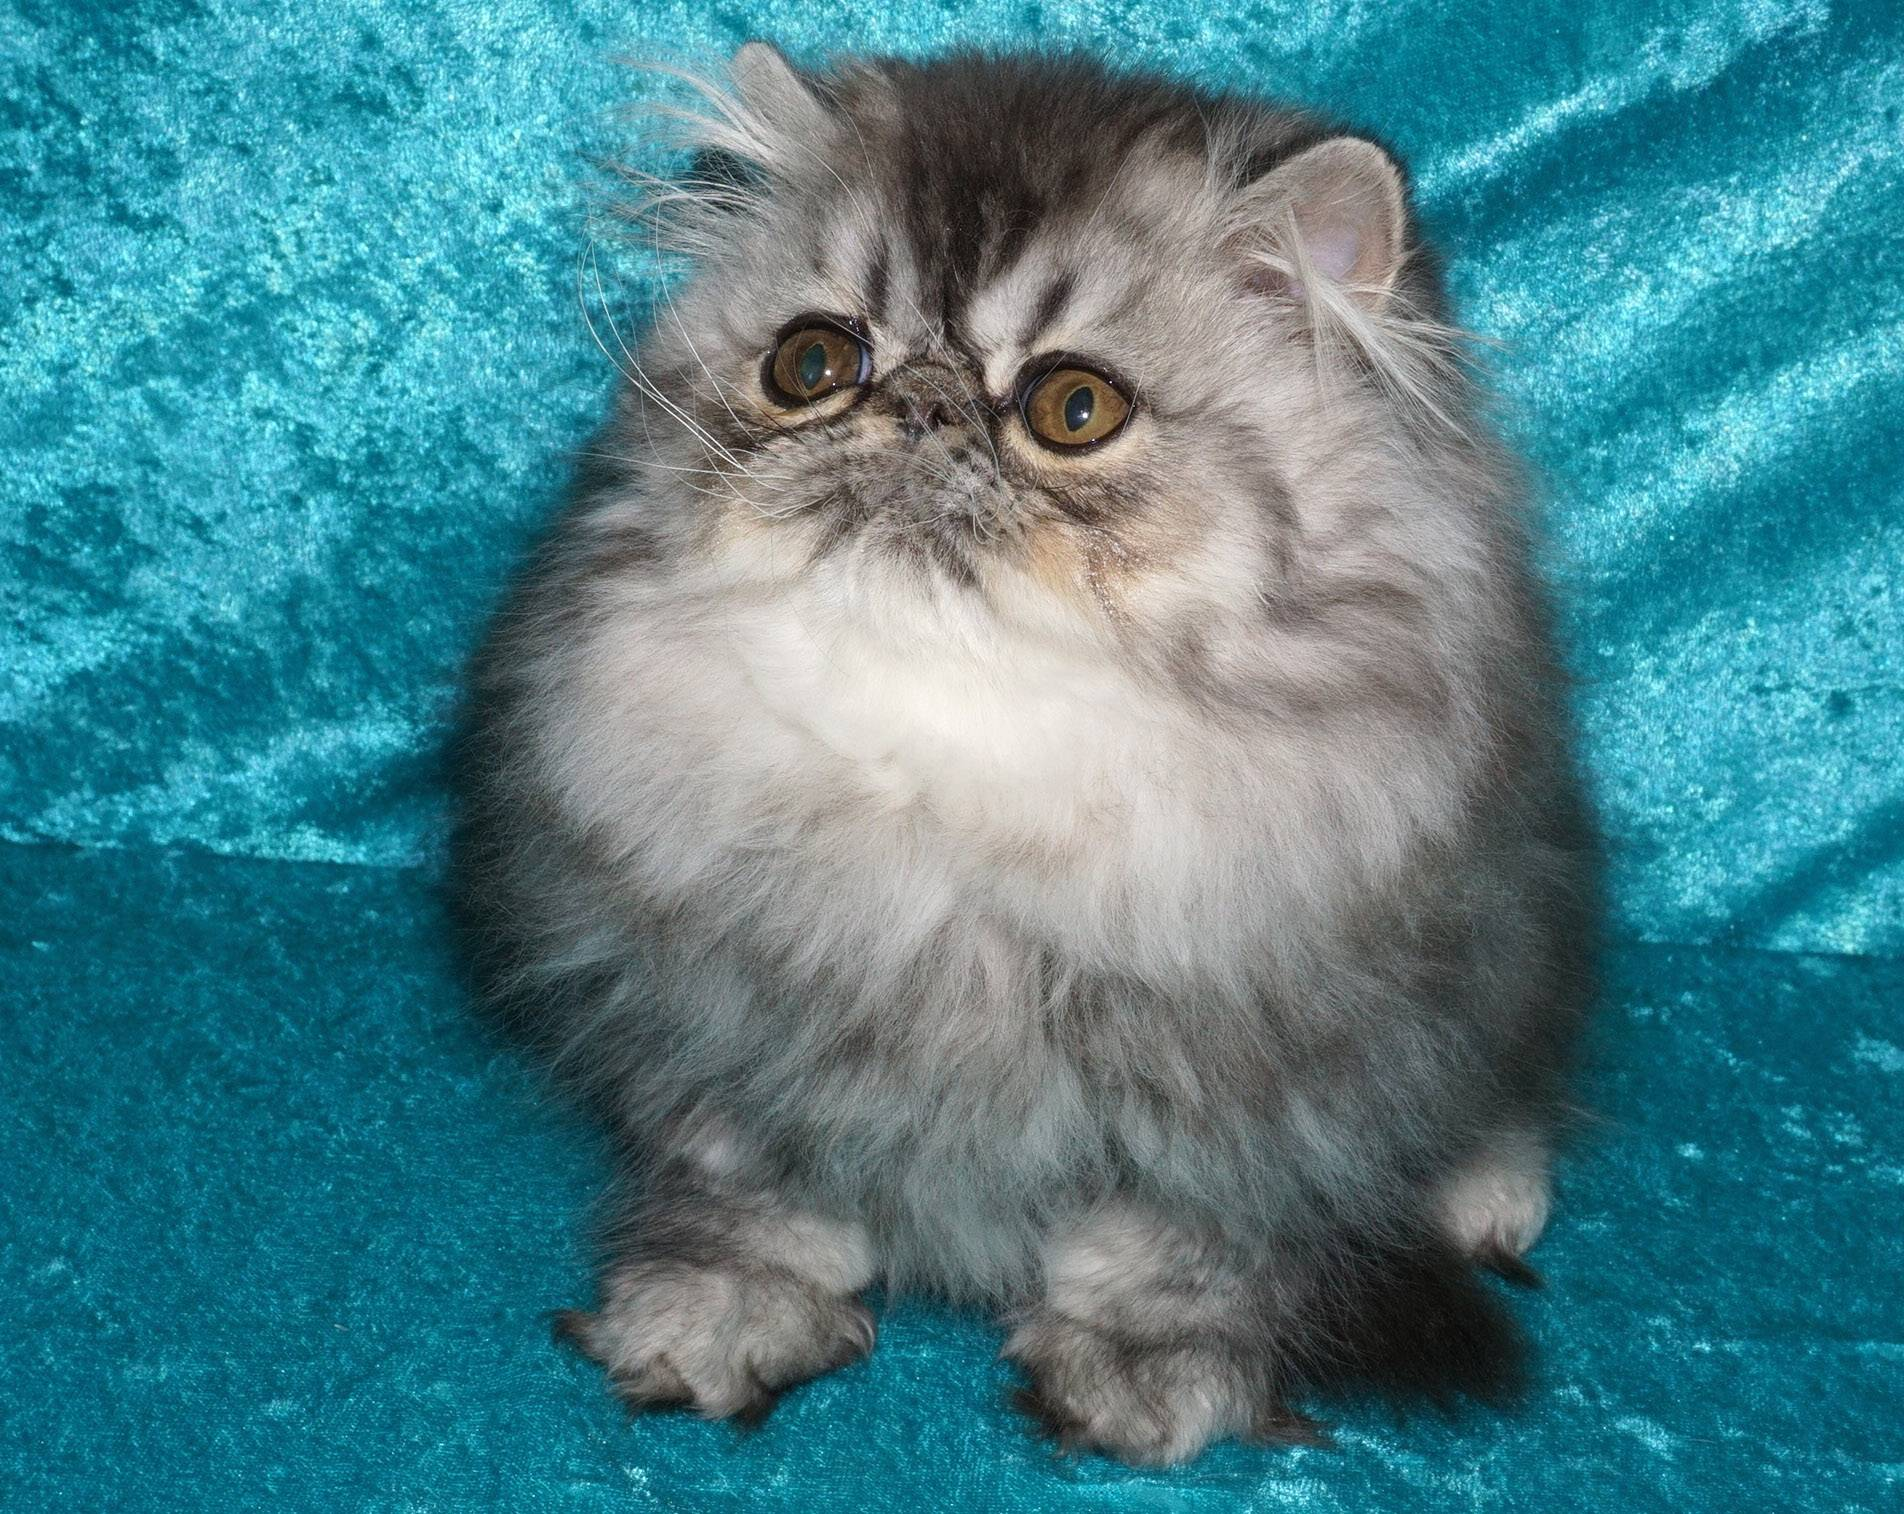 Breeder Cary Plummer, a member of the Lincoln State Cat Club and co-manager of the show, will show Joleigh Chandelier of Stars R Us, a 5-month-old silver mackerel tabby Persian male, at the club's cat show this weekend at the Kane County Fairgrounds in St. Charles.